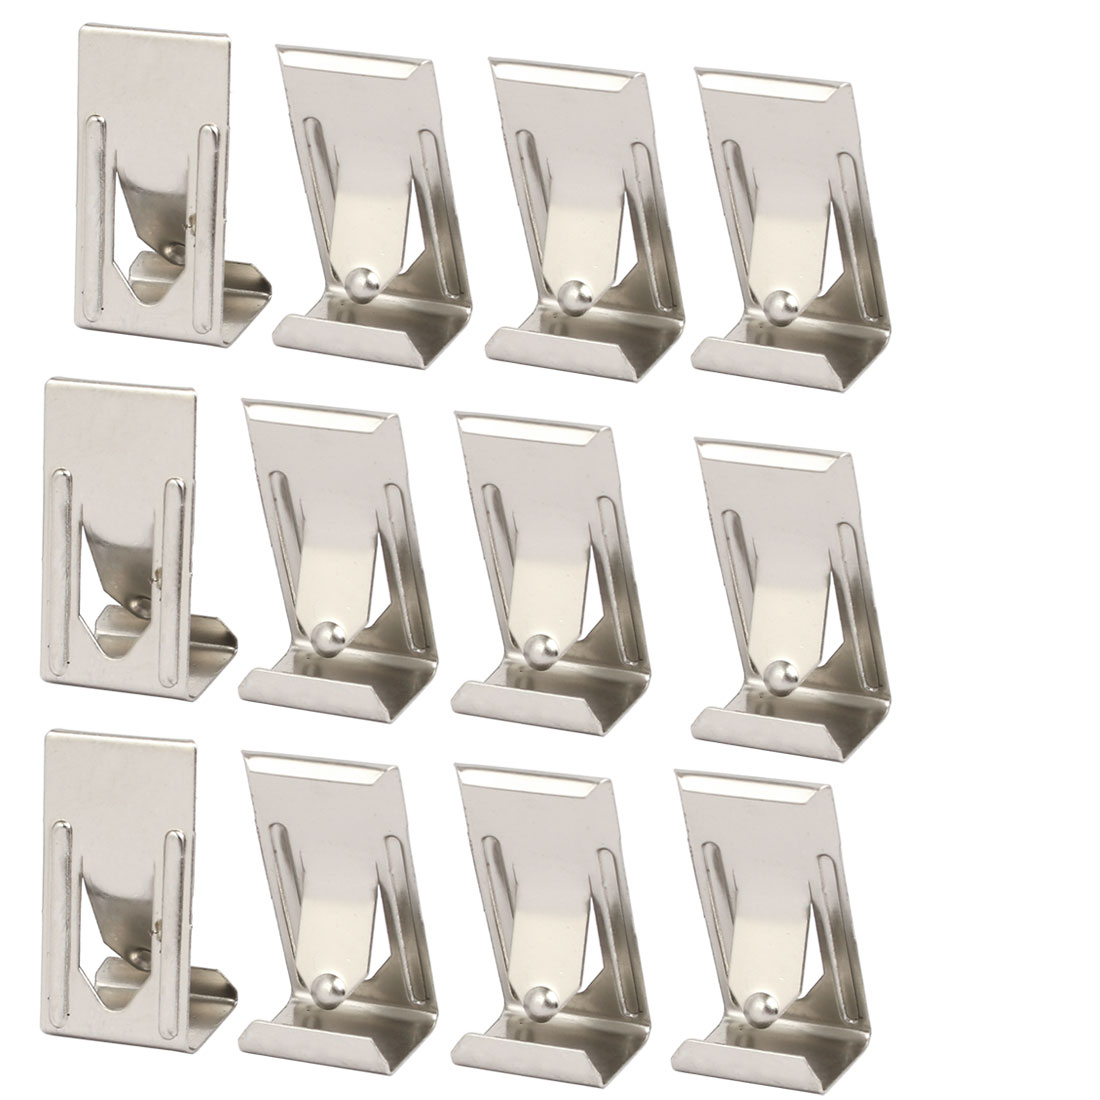 26mmx14mm Picture Photo Frame Metal Spring Turn Clip Hanger Siver Tone 12pcs